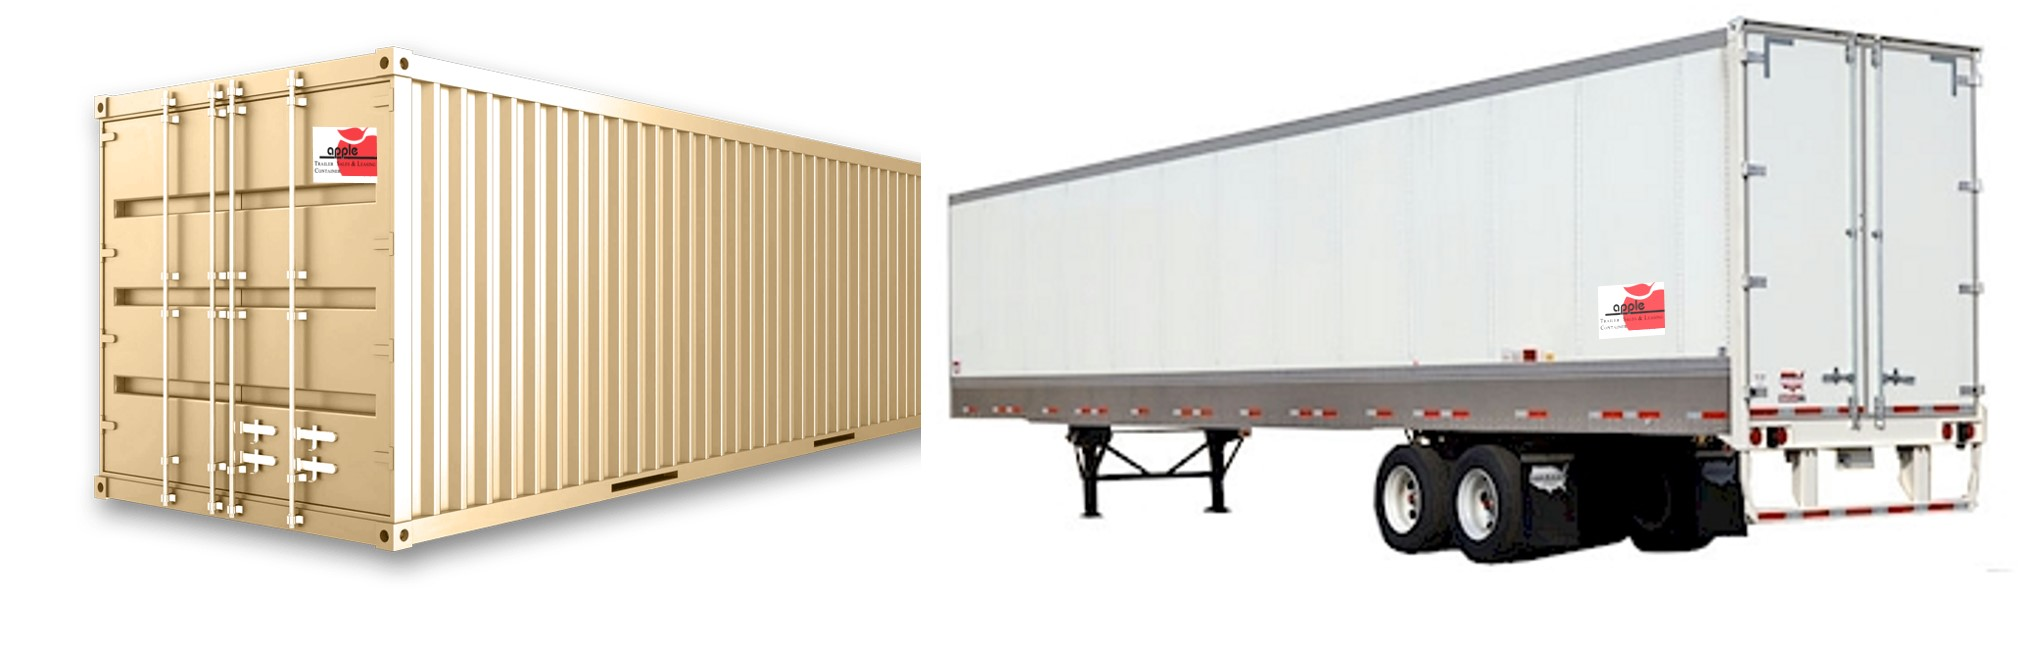 Storage Container and Trailer Rentals in MA - Apple Truck